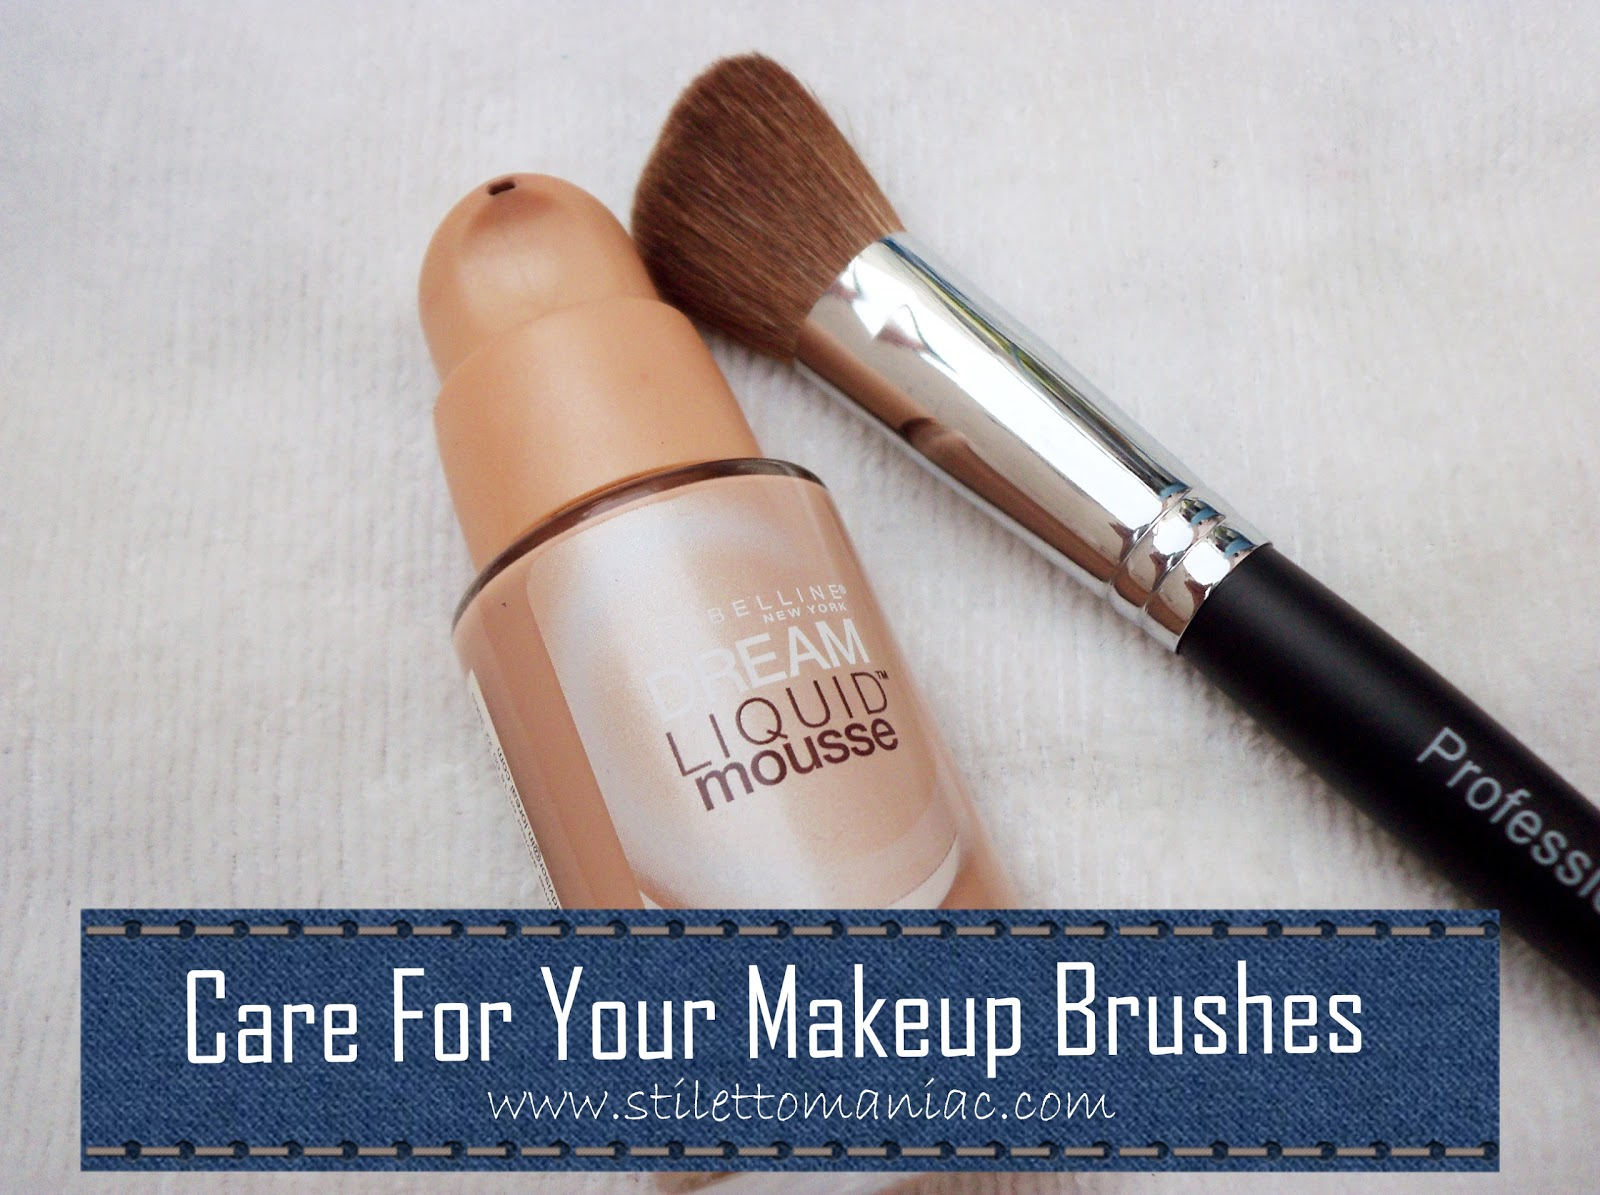 The complete guide to cleaning your make-up brushes (and what NOT to do)